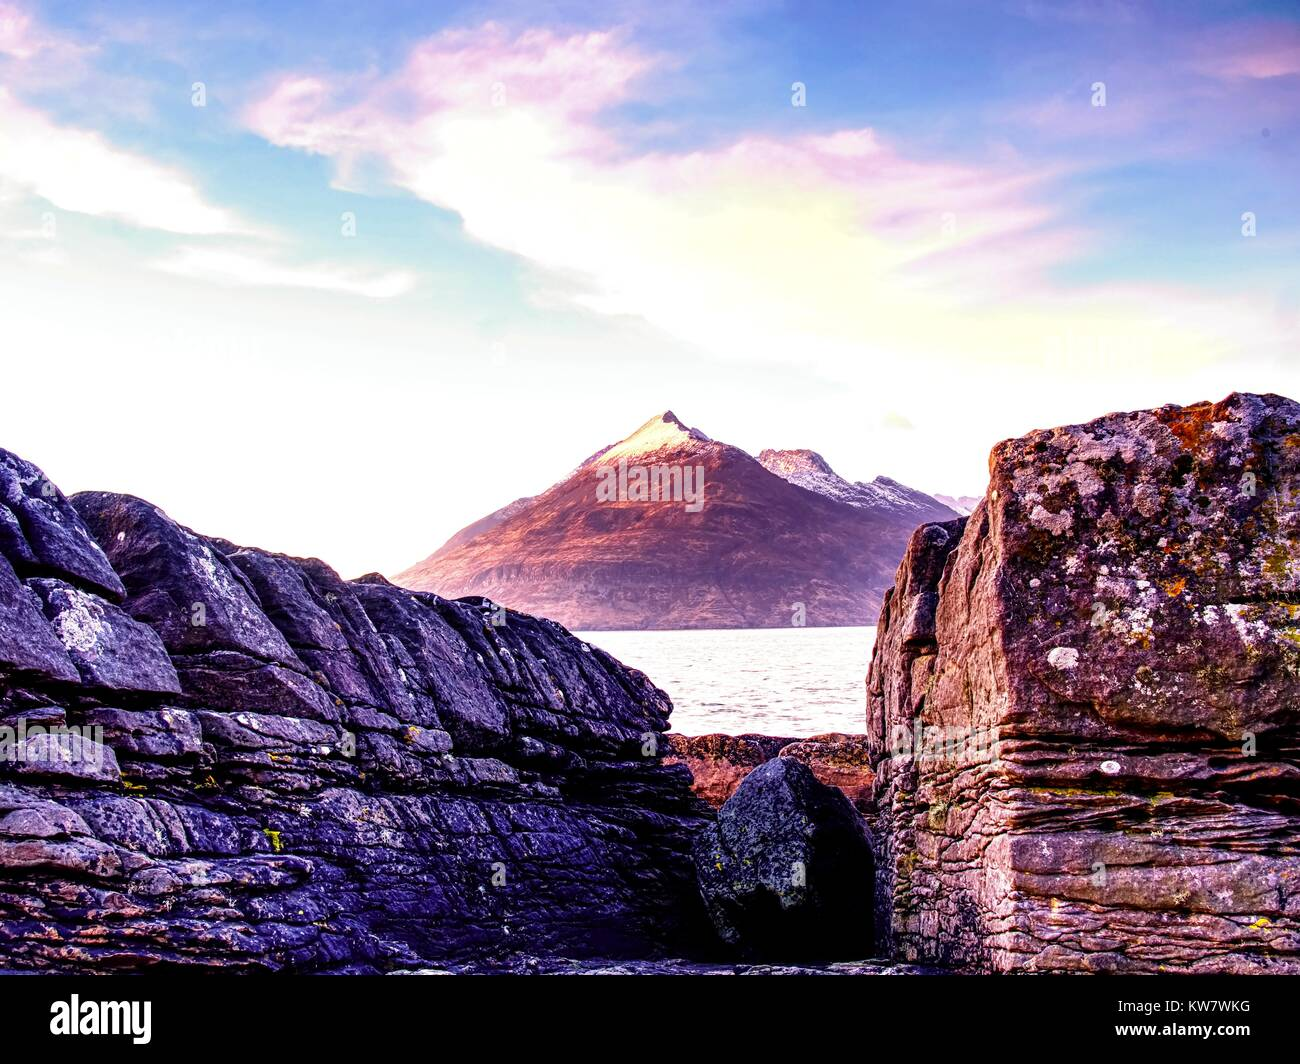 The stony beach and cliff of rocky bay. Blue tones of February sunset, pink horizon.  Dark slipery boulders with - Stock Image